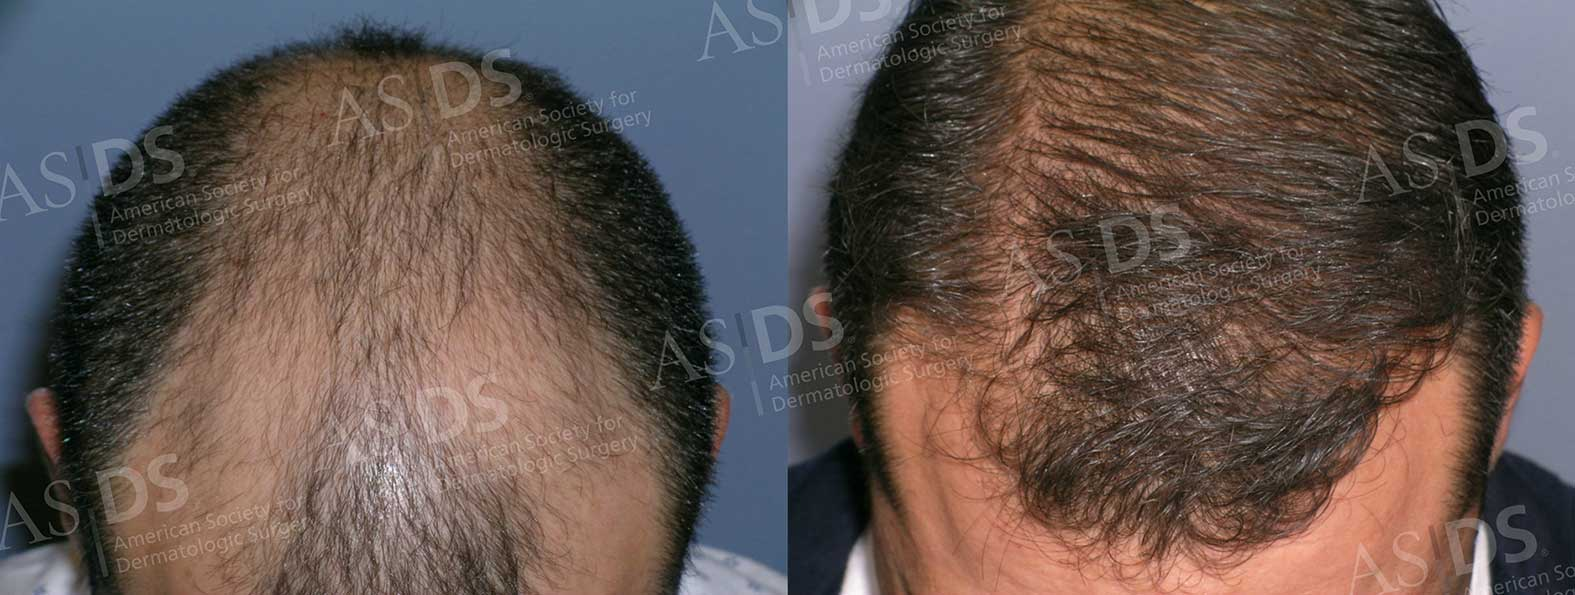 Before (left) and after (right) - top of head after hair transplant.